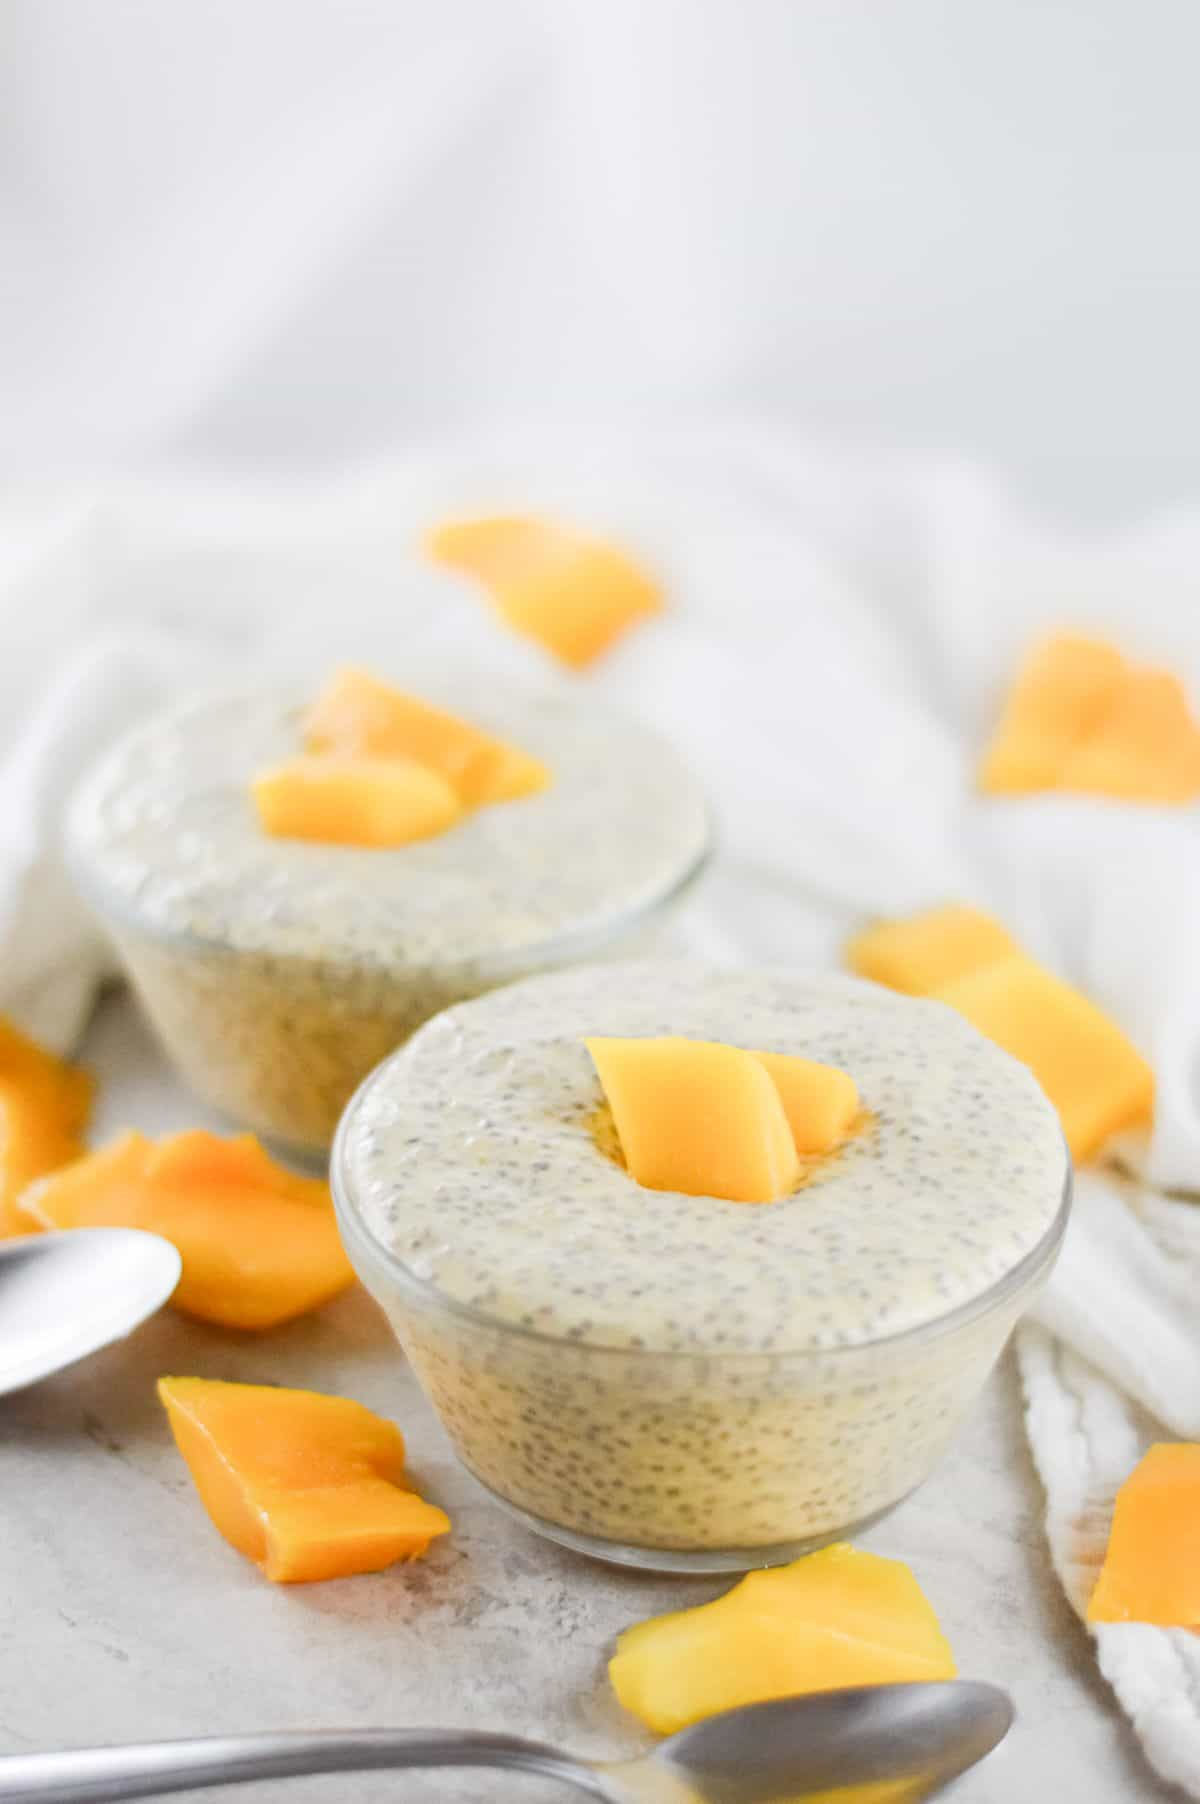 On a white bench, two bowls of chia pudding, garnished with mango sit. Mango pieces scattered around the bowls, and there are two silver spoon on the left. A white cloth in the background.